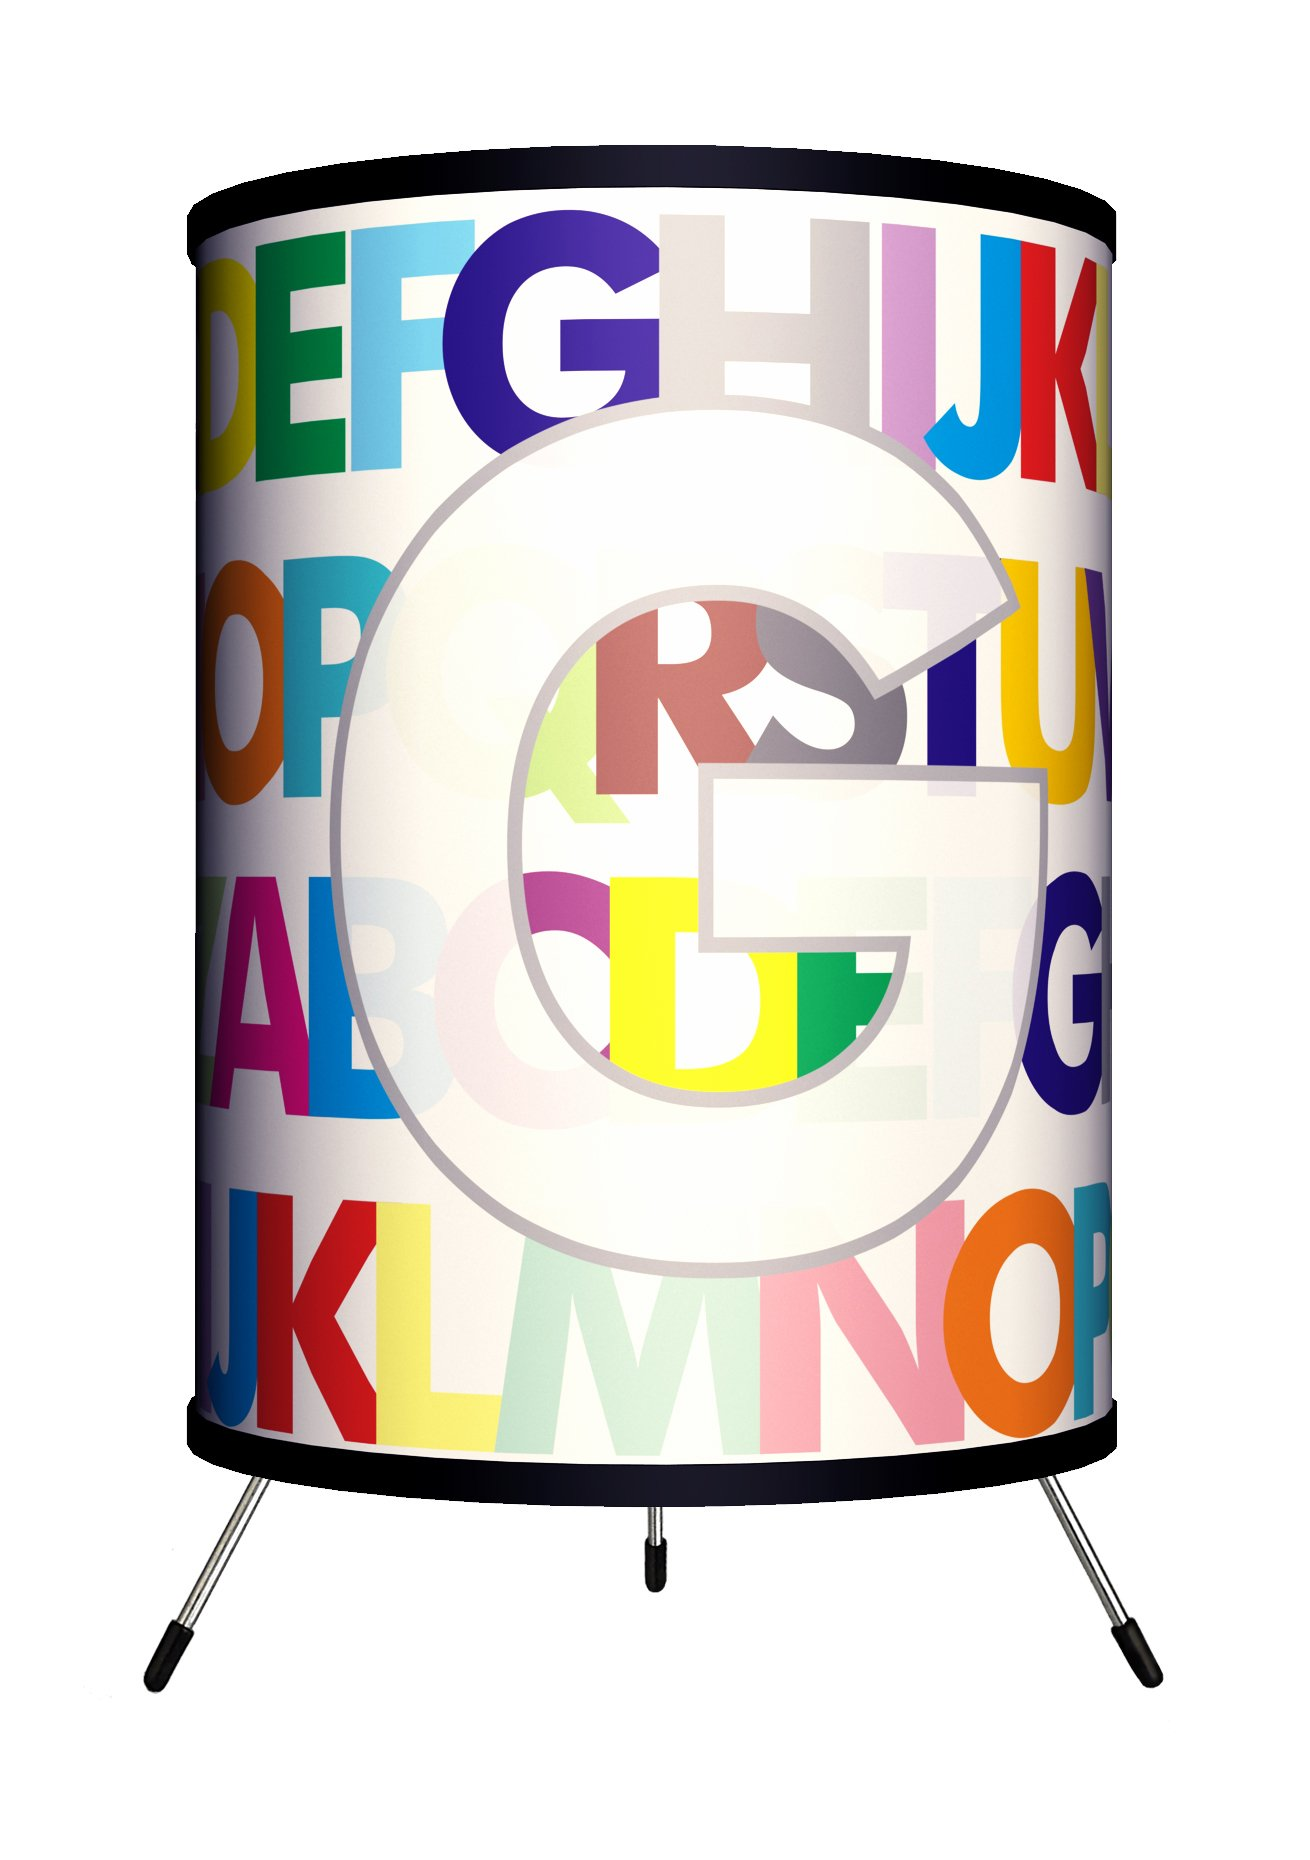 Lamp-In-A-Box TRI-MNG-MODRG Monograms Modern Letter G Tripod Lamp, 8'' x 8'' x 14'' by Lamp-In-A-Box